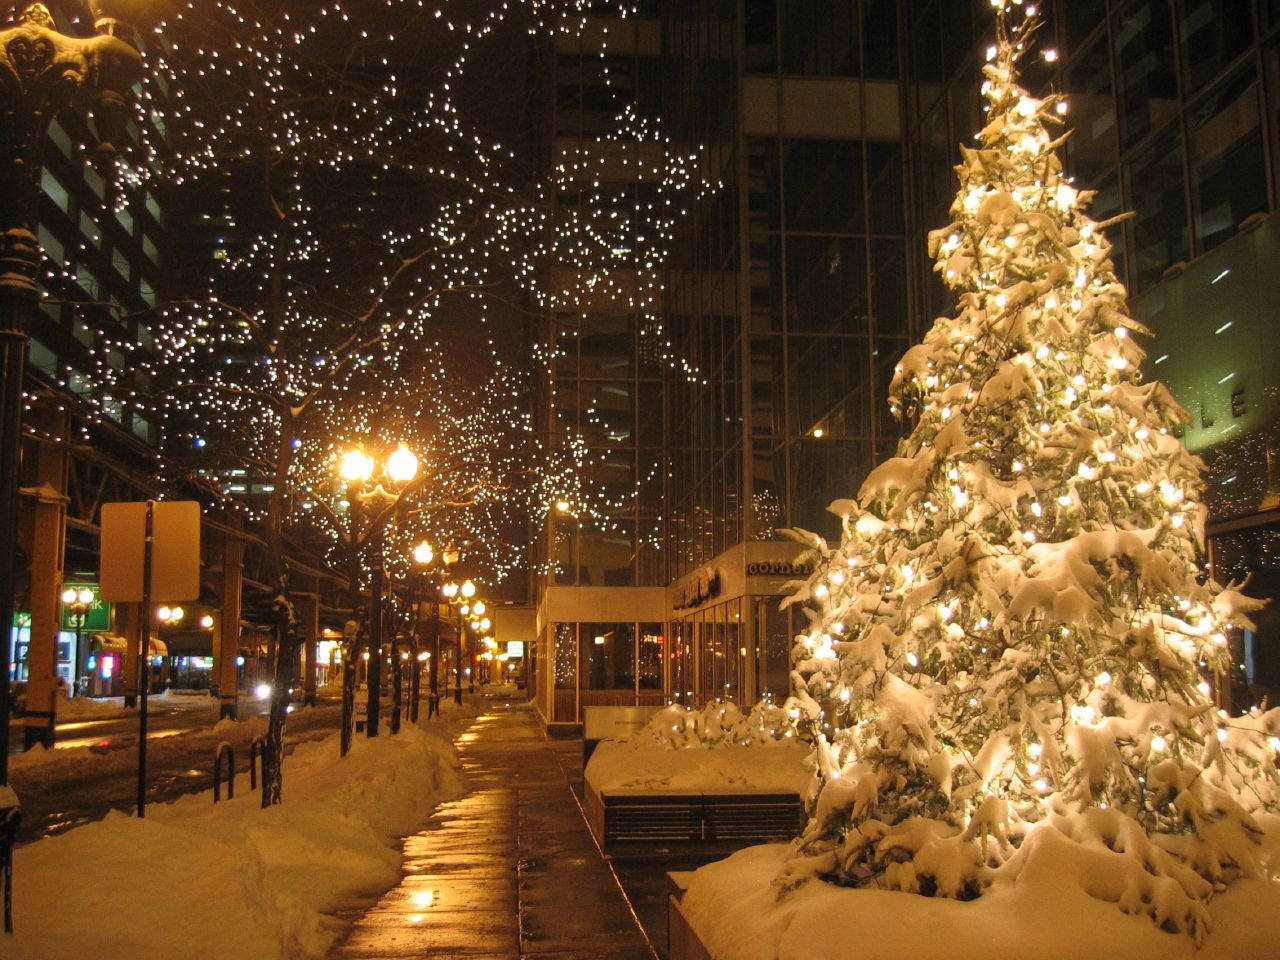 Chicago Christmas lights | © Jordan Fischer/Flickr